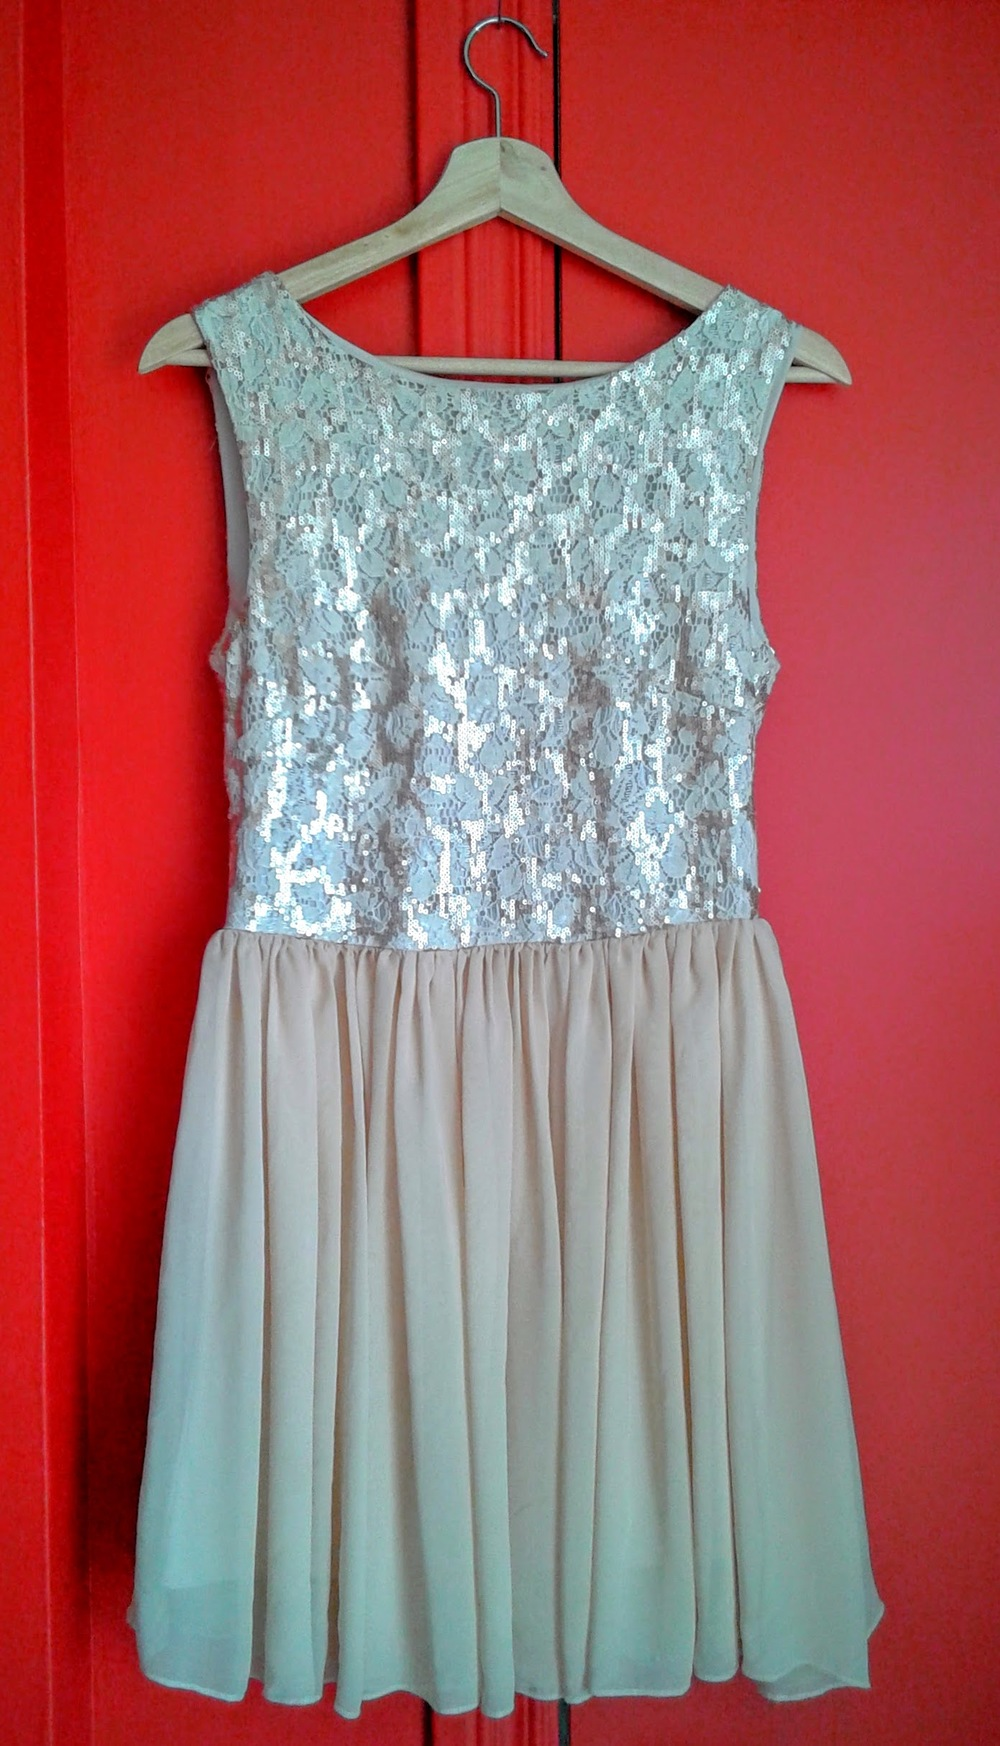 Peaches and cream dress; Size M, $24